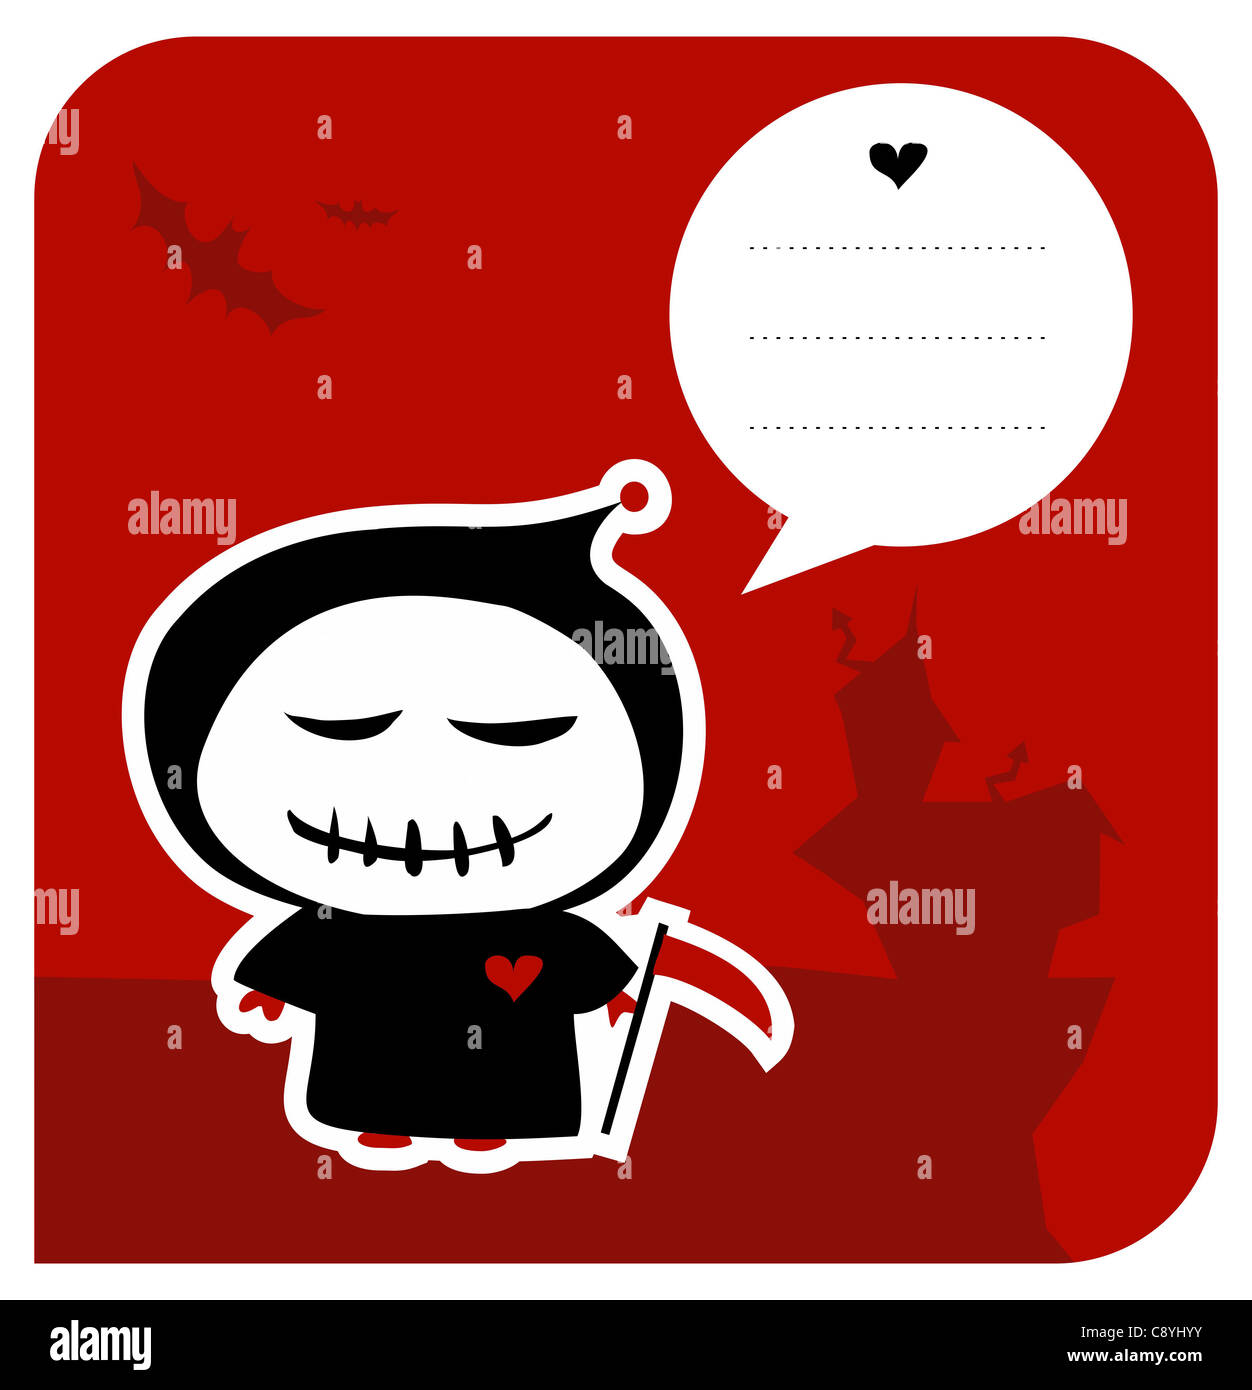 Grim reaper cut out stock images pictures alamy funny grim reaper invitation with reaping hook and speech bubble usable as greeting card vector bookmarktalkfo Image collections